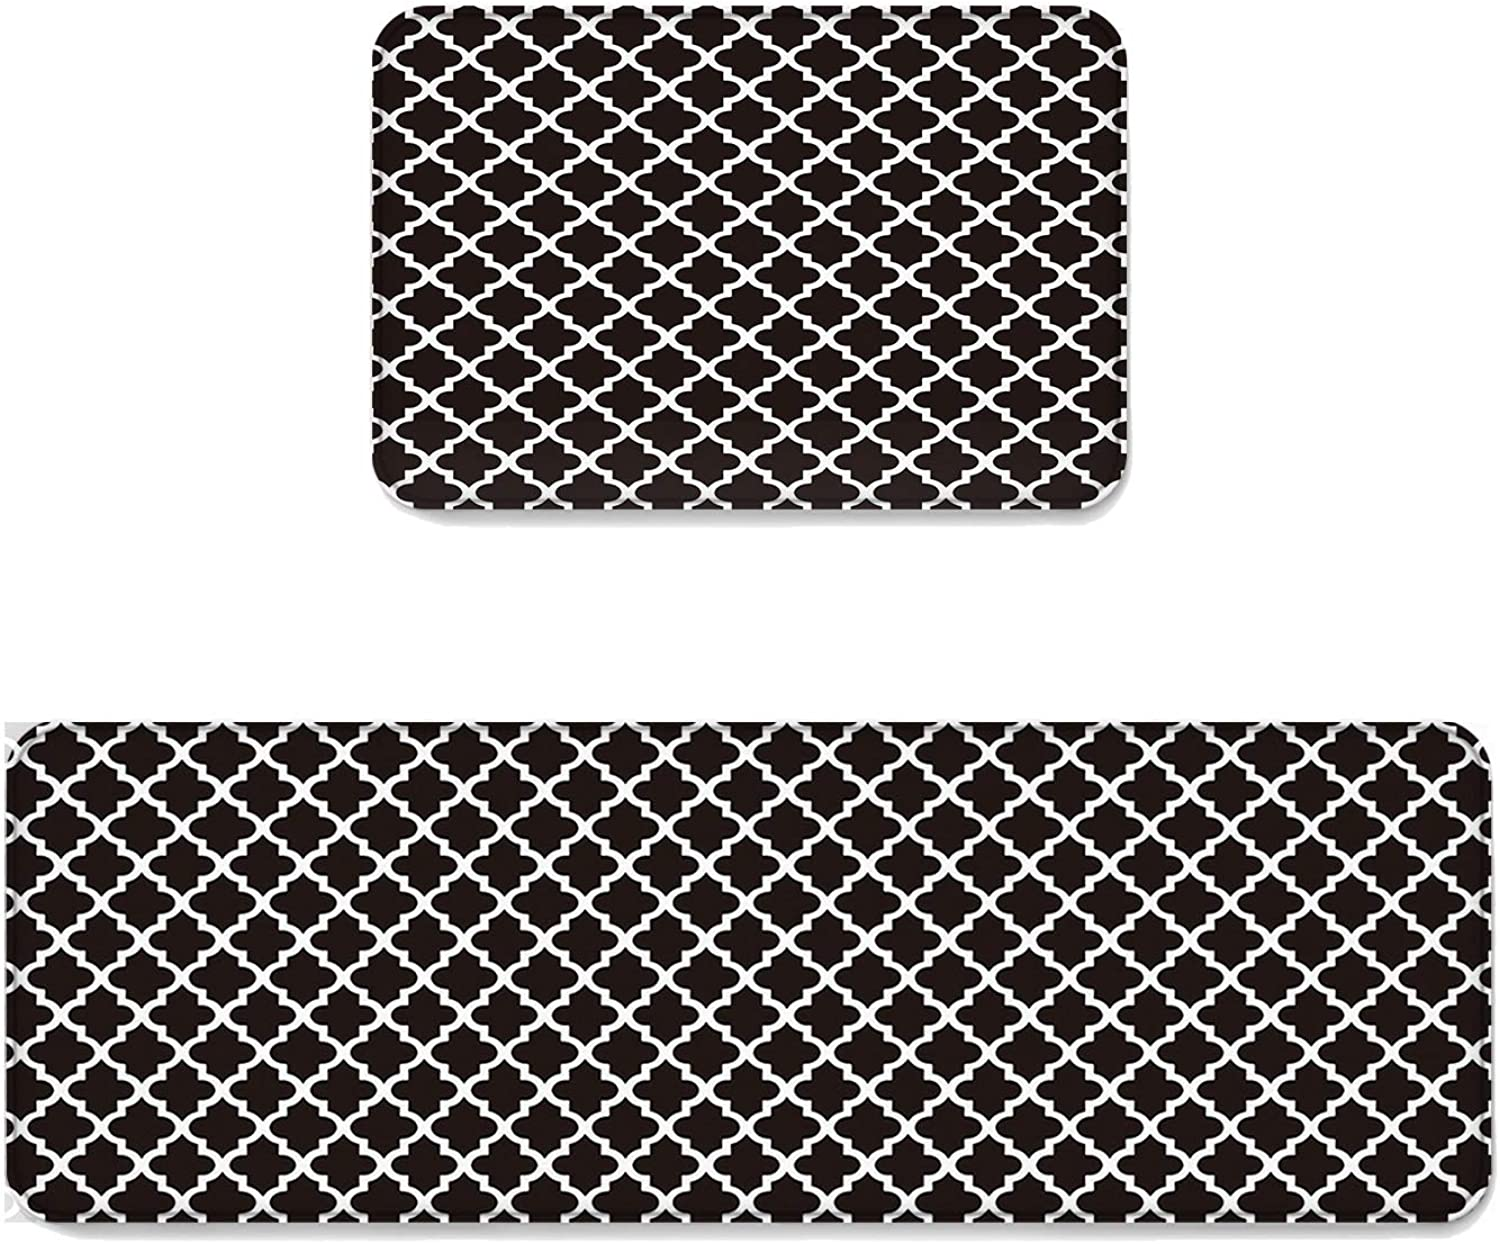 Fantasy Star Kitchen Rug Sets 2 Piece Floor Mats Non-Slip Rubber Backing Area Rugs Grid Geometric Pattern Doormat Rubber Backing Washable Carpet Inside Door Mat Pad Sets (19.7  x 31.5 +19.7  x 47.2 )